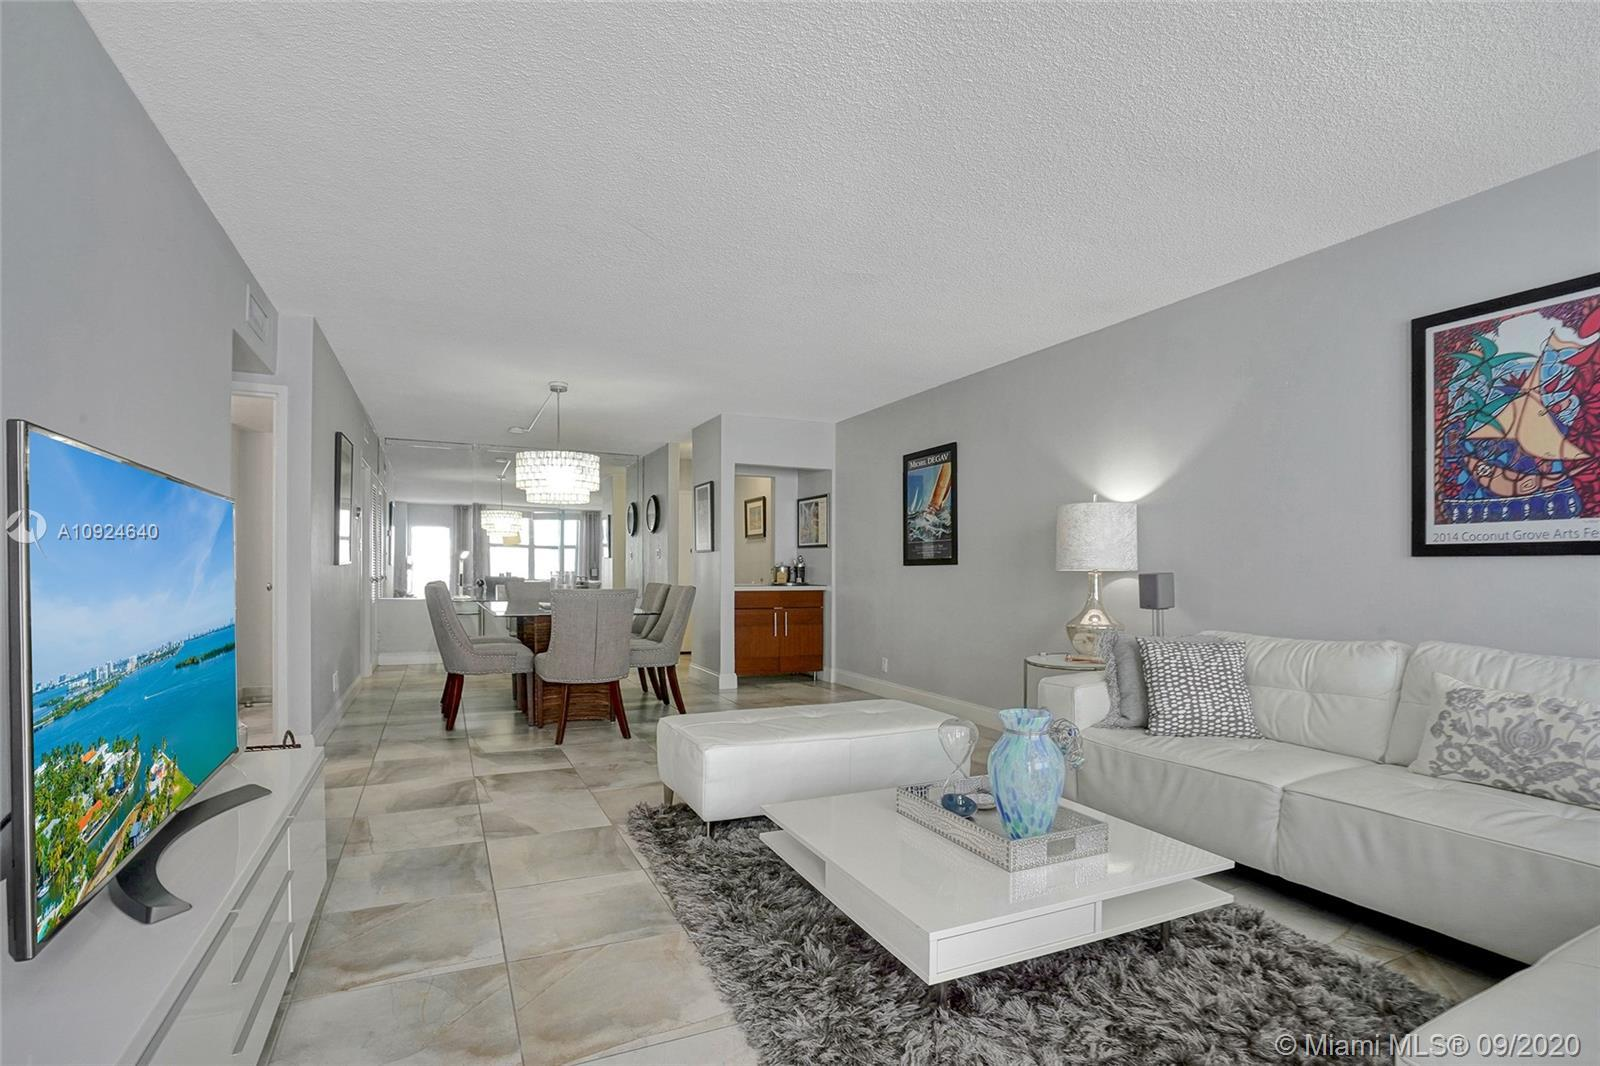 Miami living at its best! Oceanfront large 1 BR, 1.5 bathrooms in sought after Town of Surfside.  St